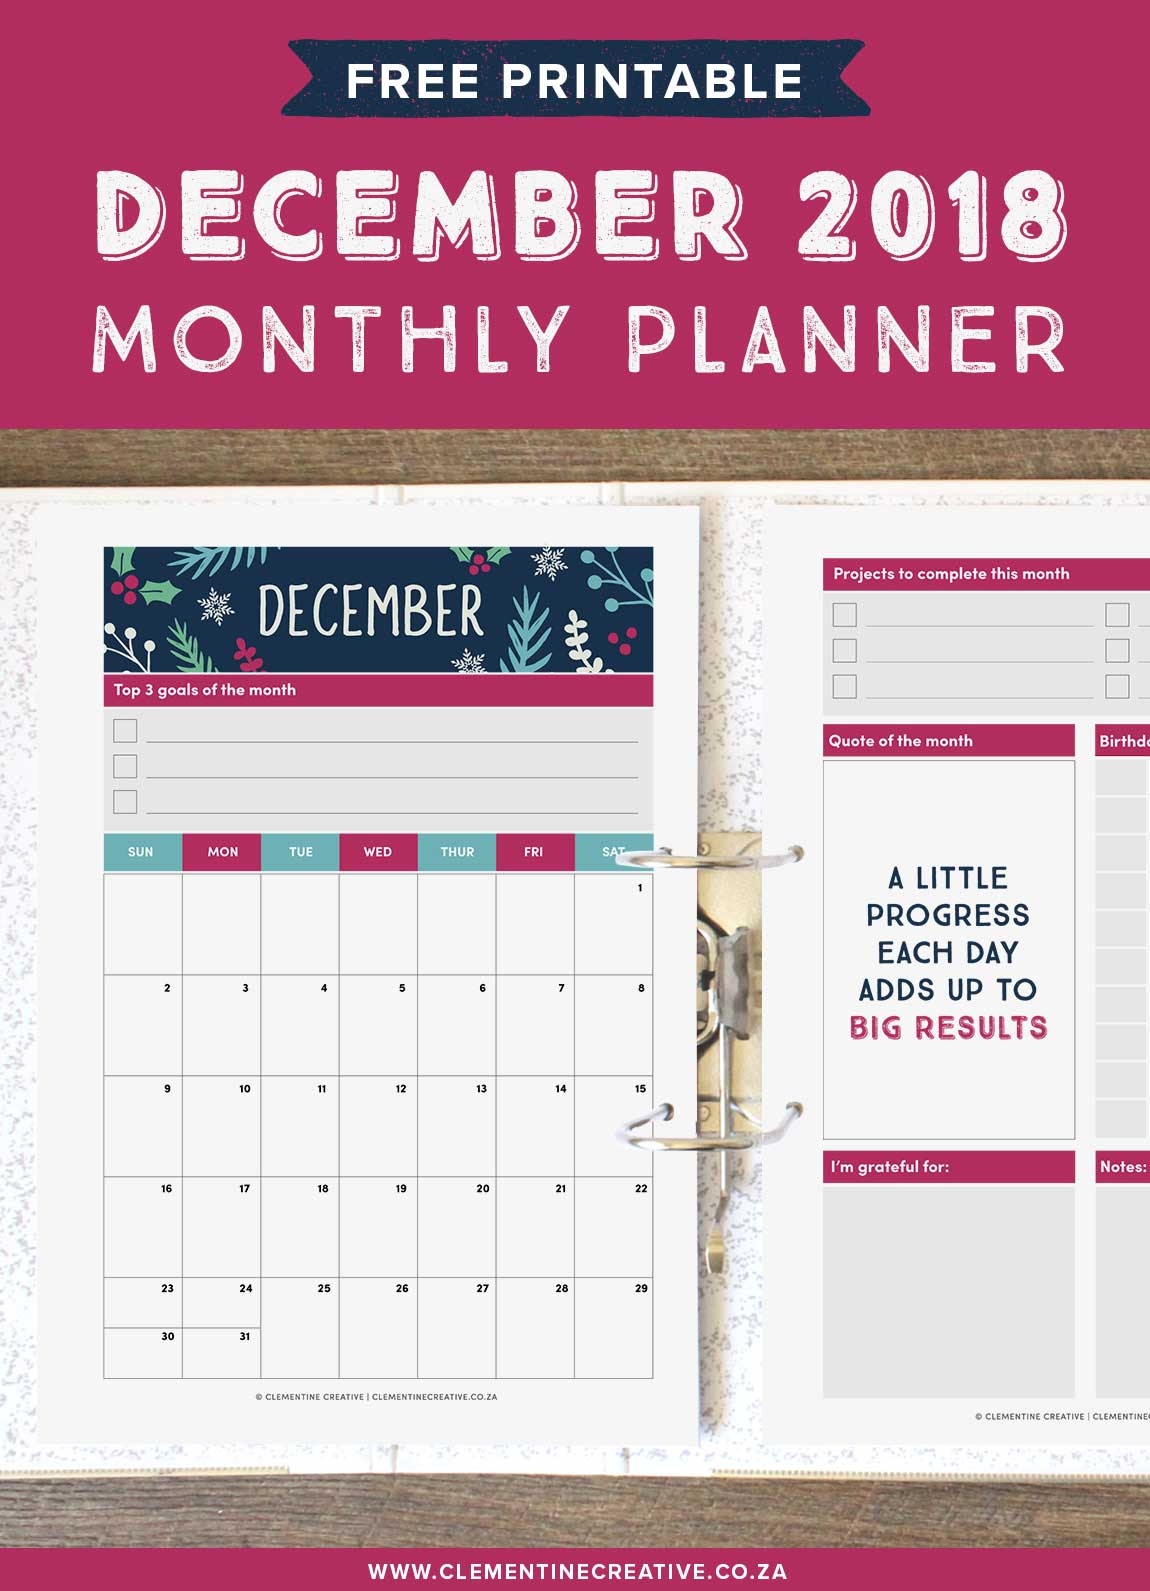 December 2018 free printable monthly planner